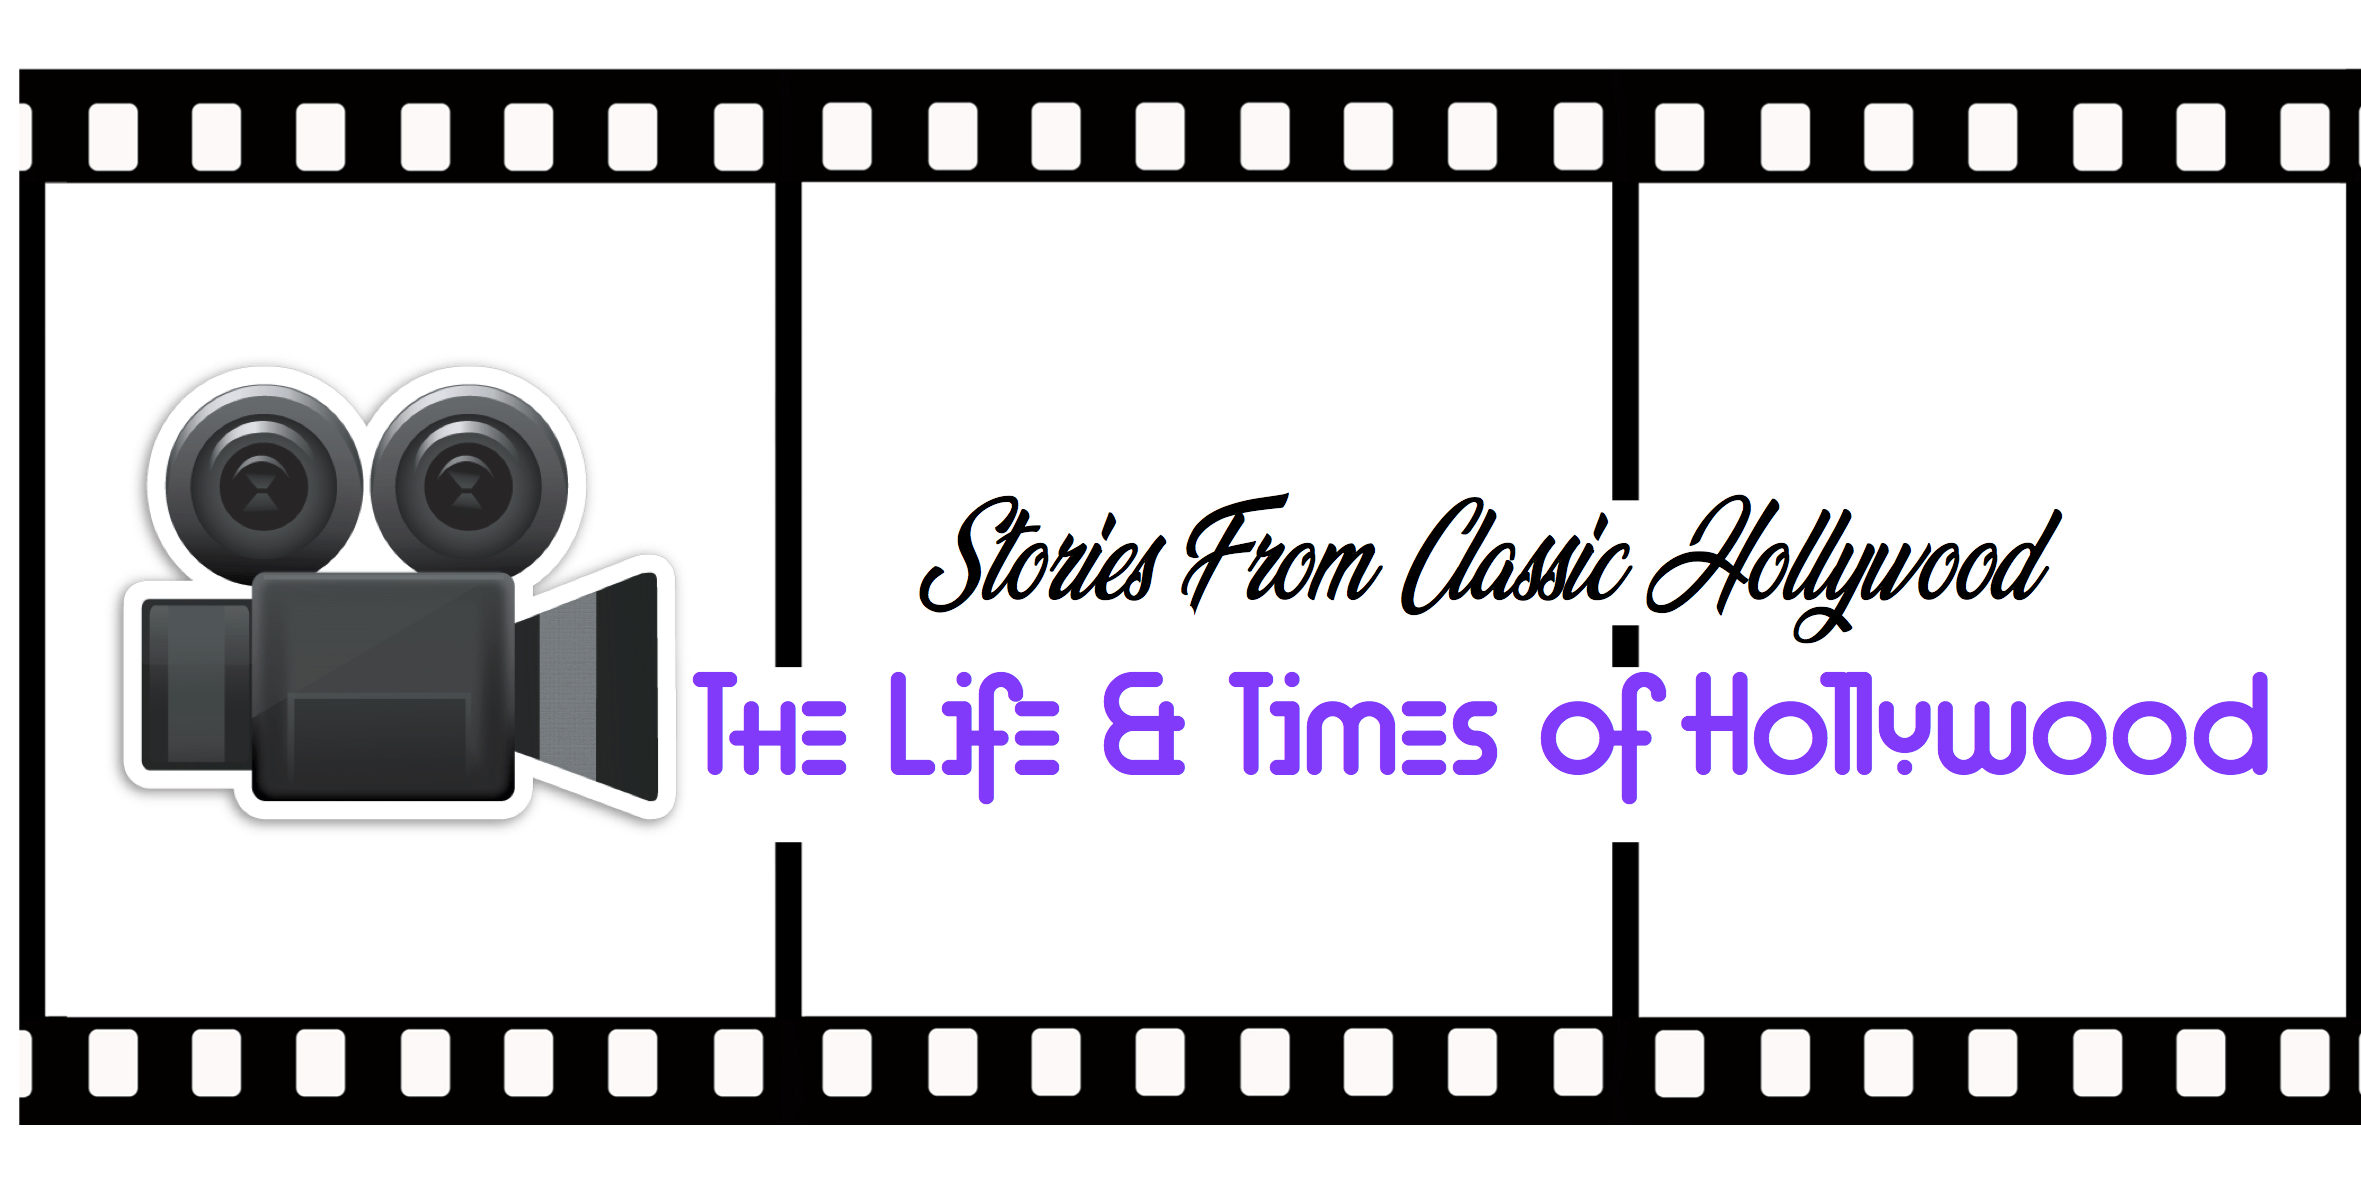 The Life & Times of Hollywood